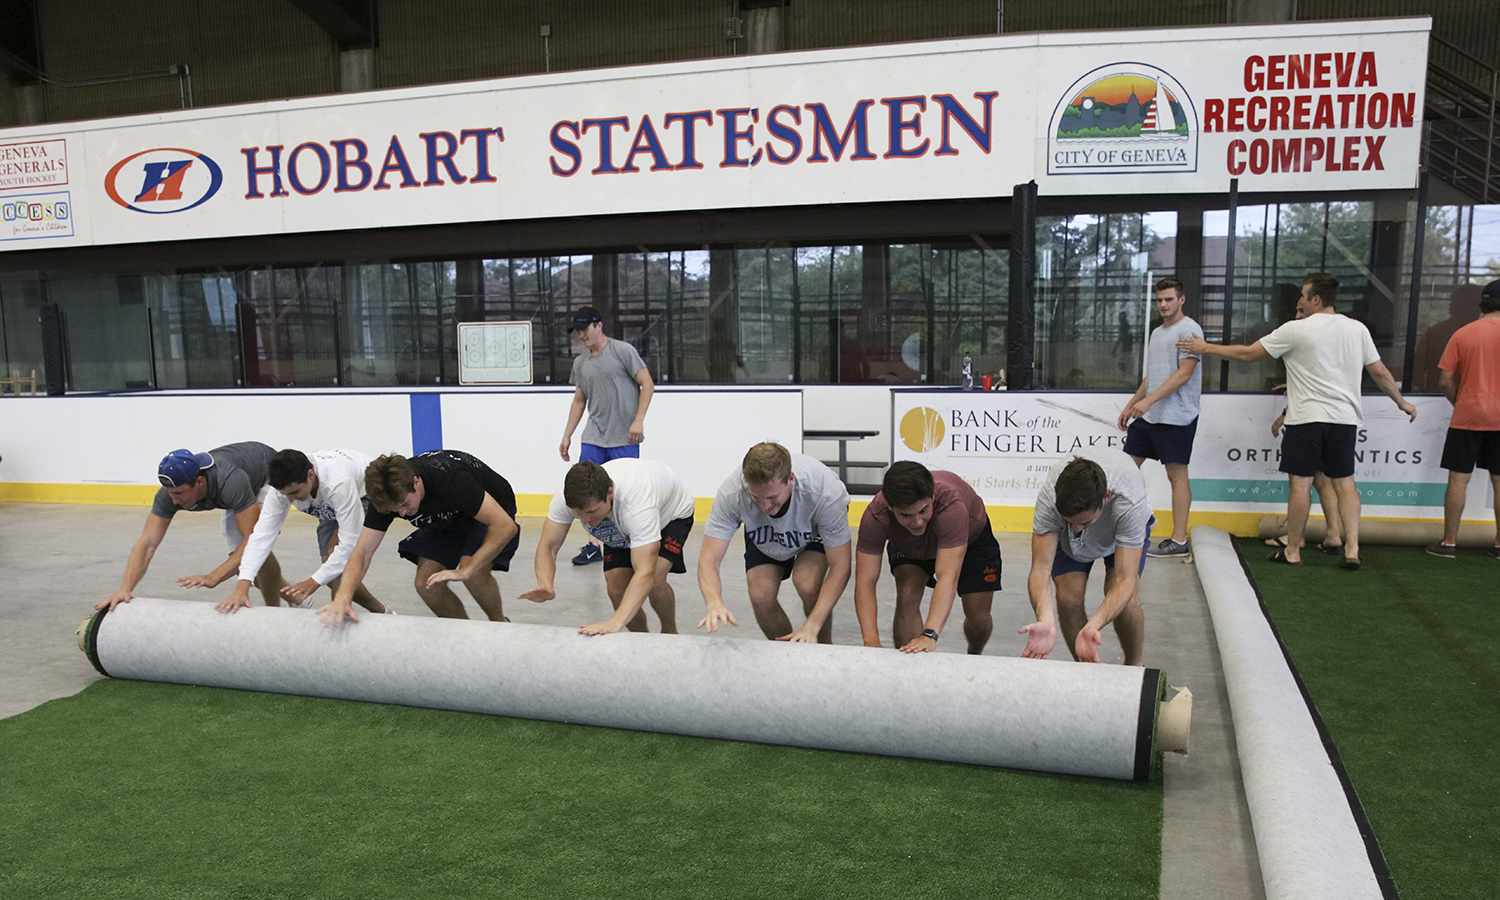 Members of the Hobart Hockey Team roll up turf at the Cooler.